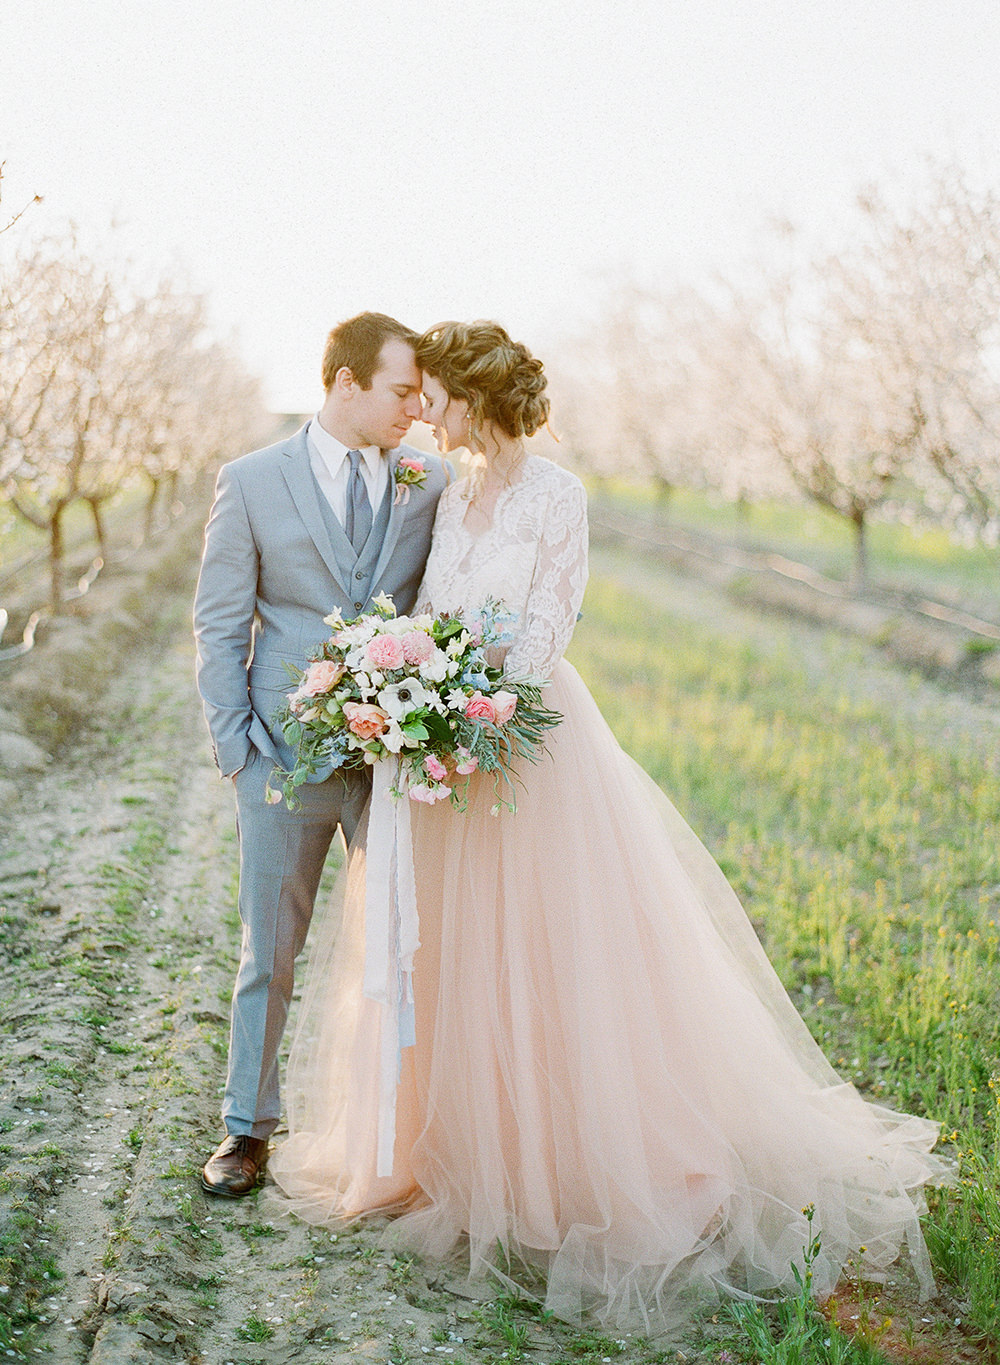 Spring Almond Orchard Wedding Inspiration - photo by Katie McGihon Photography https://ruffledblog.com/spring-almond-orchard-wedding-inspiration